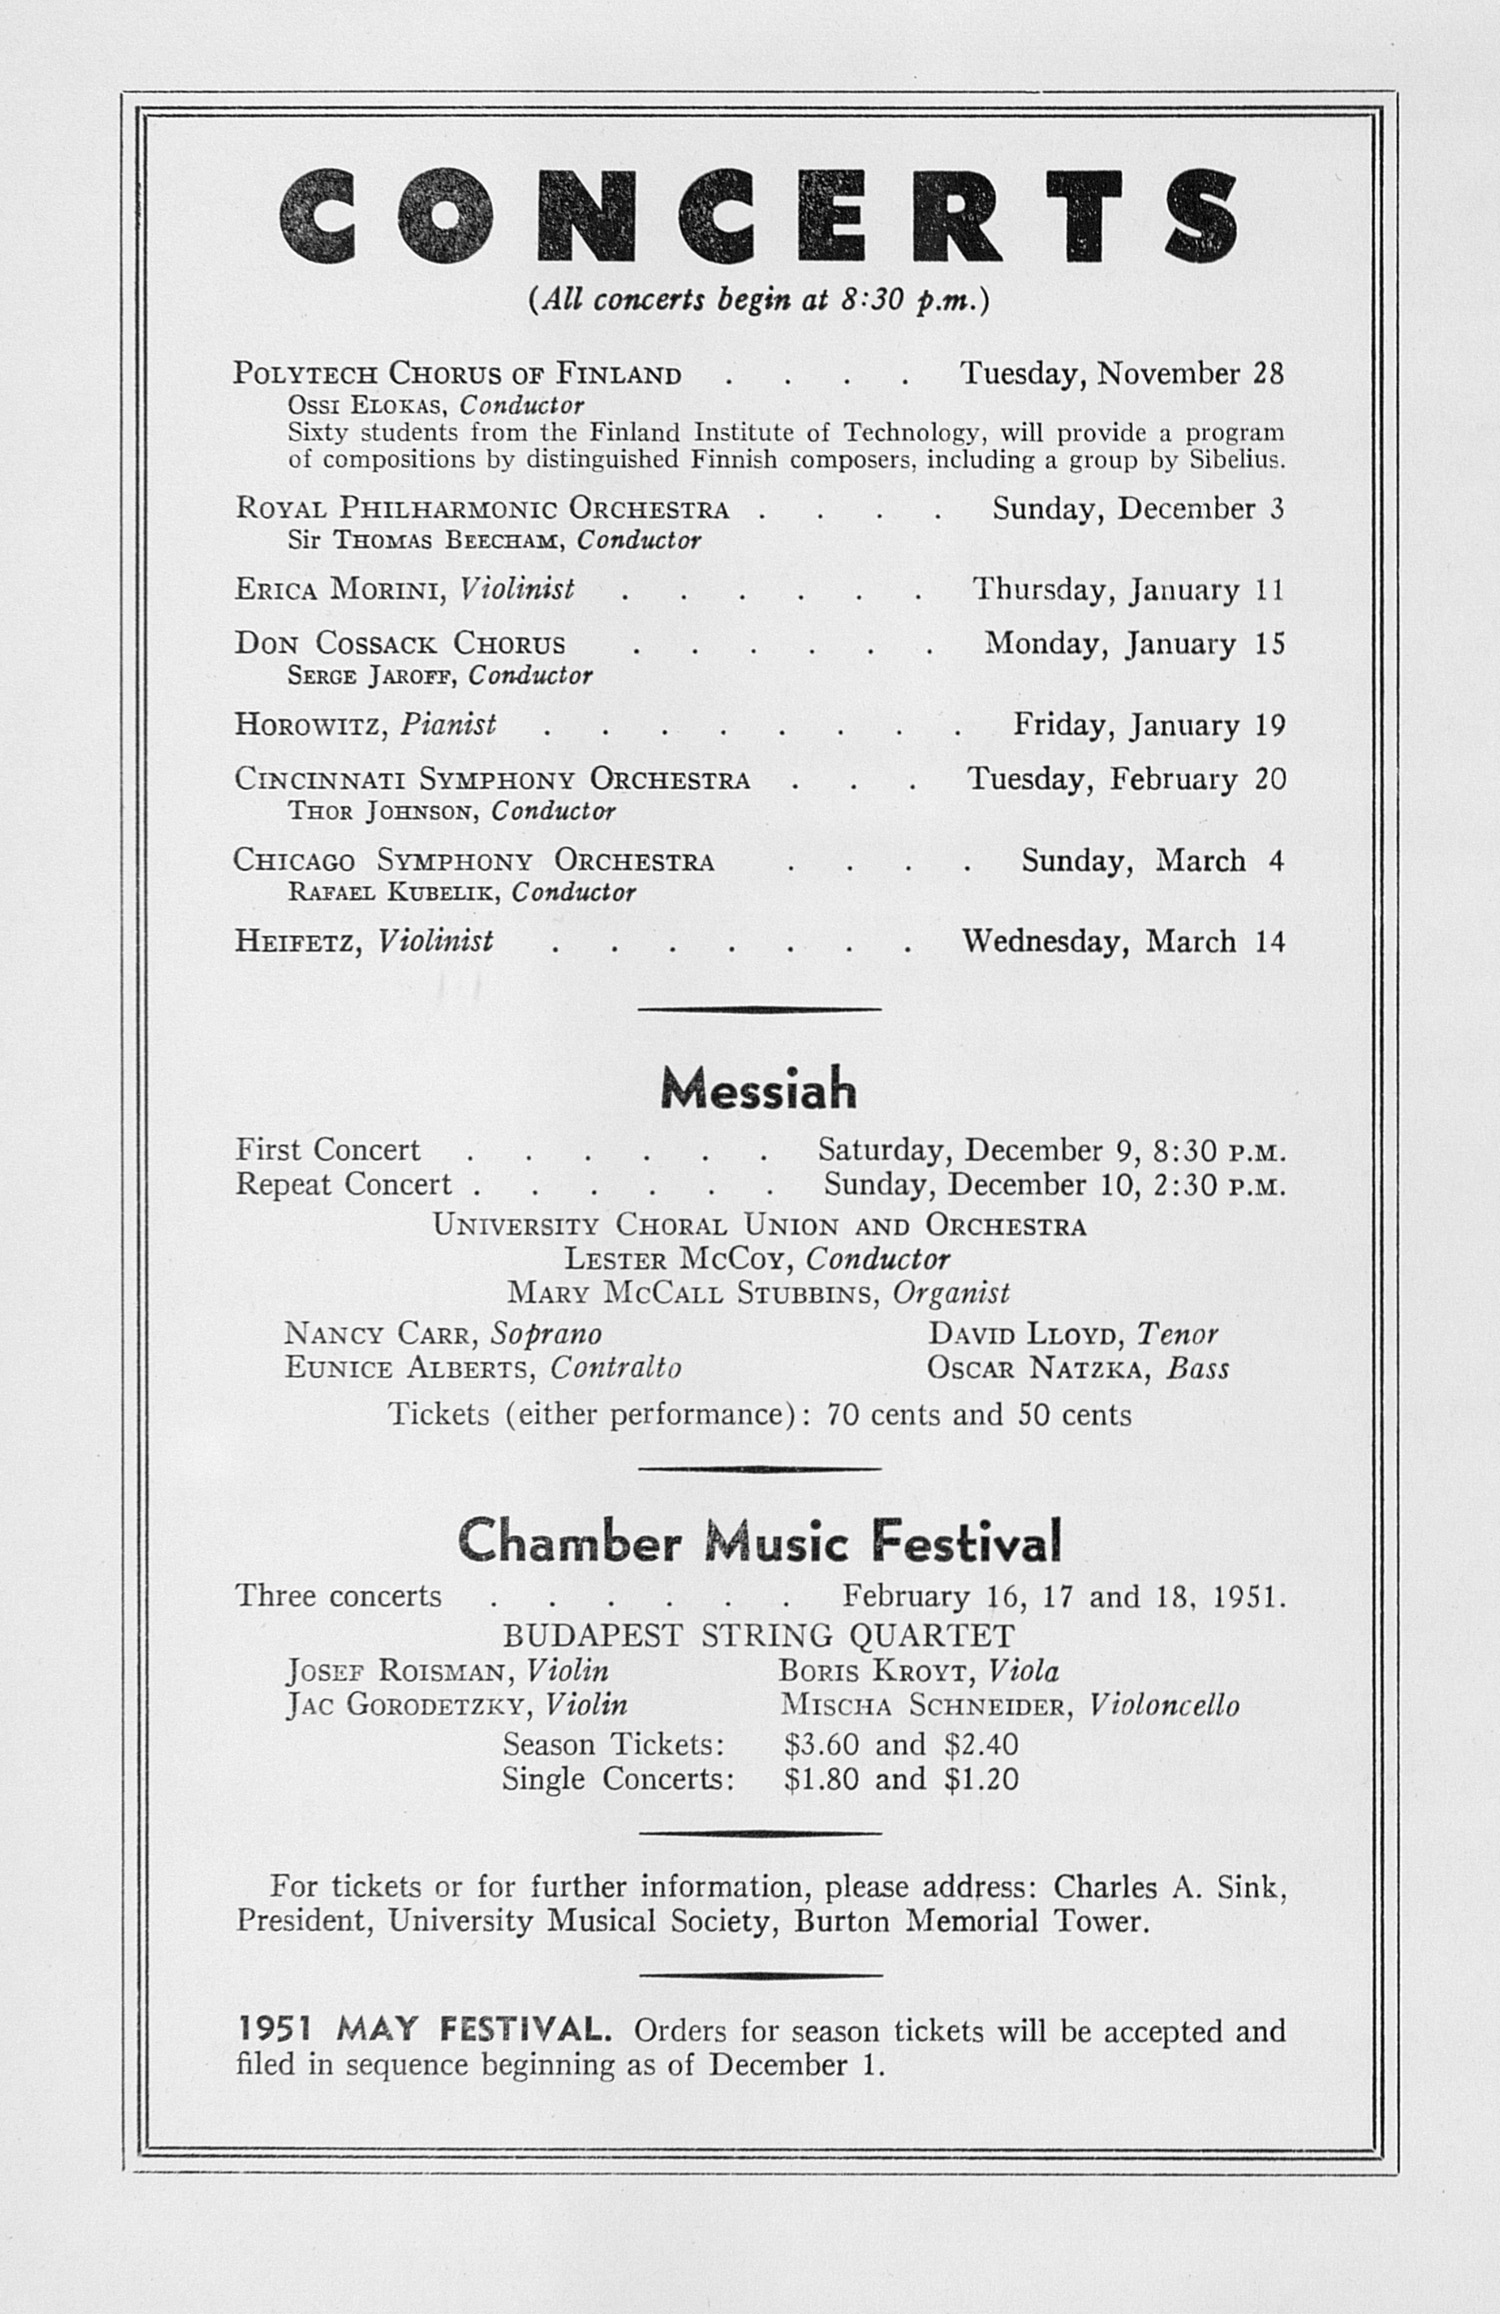 UMS Concert Program, November 20, 1950: Seventy-second Annual Choral Union Concert Series -- Solomon image